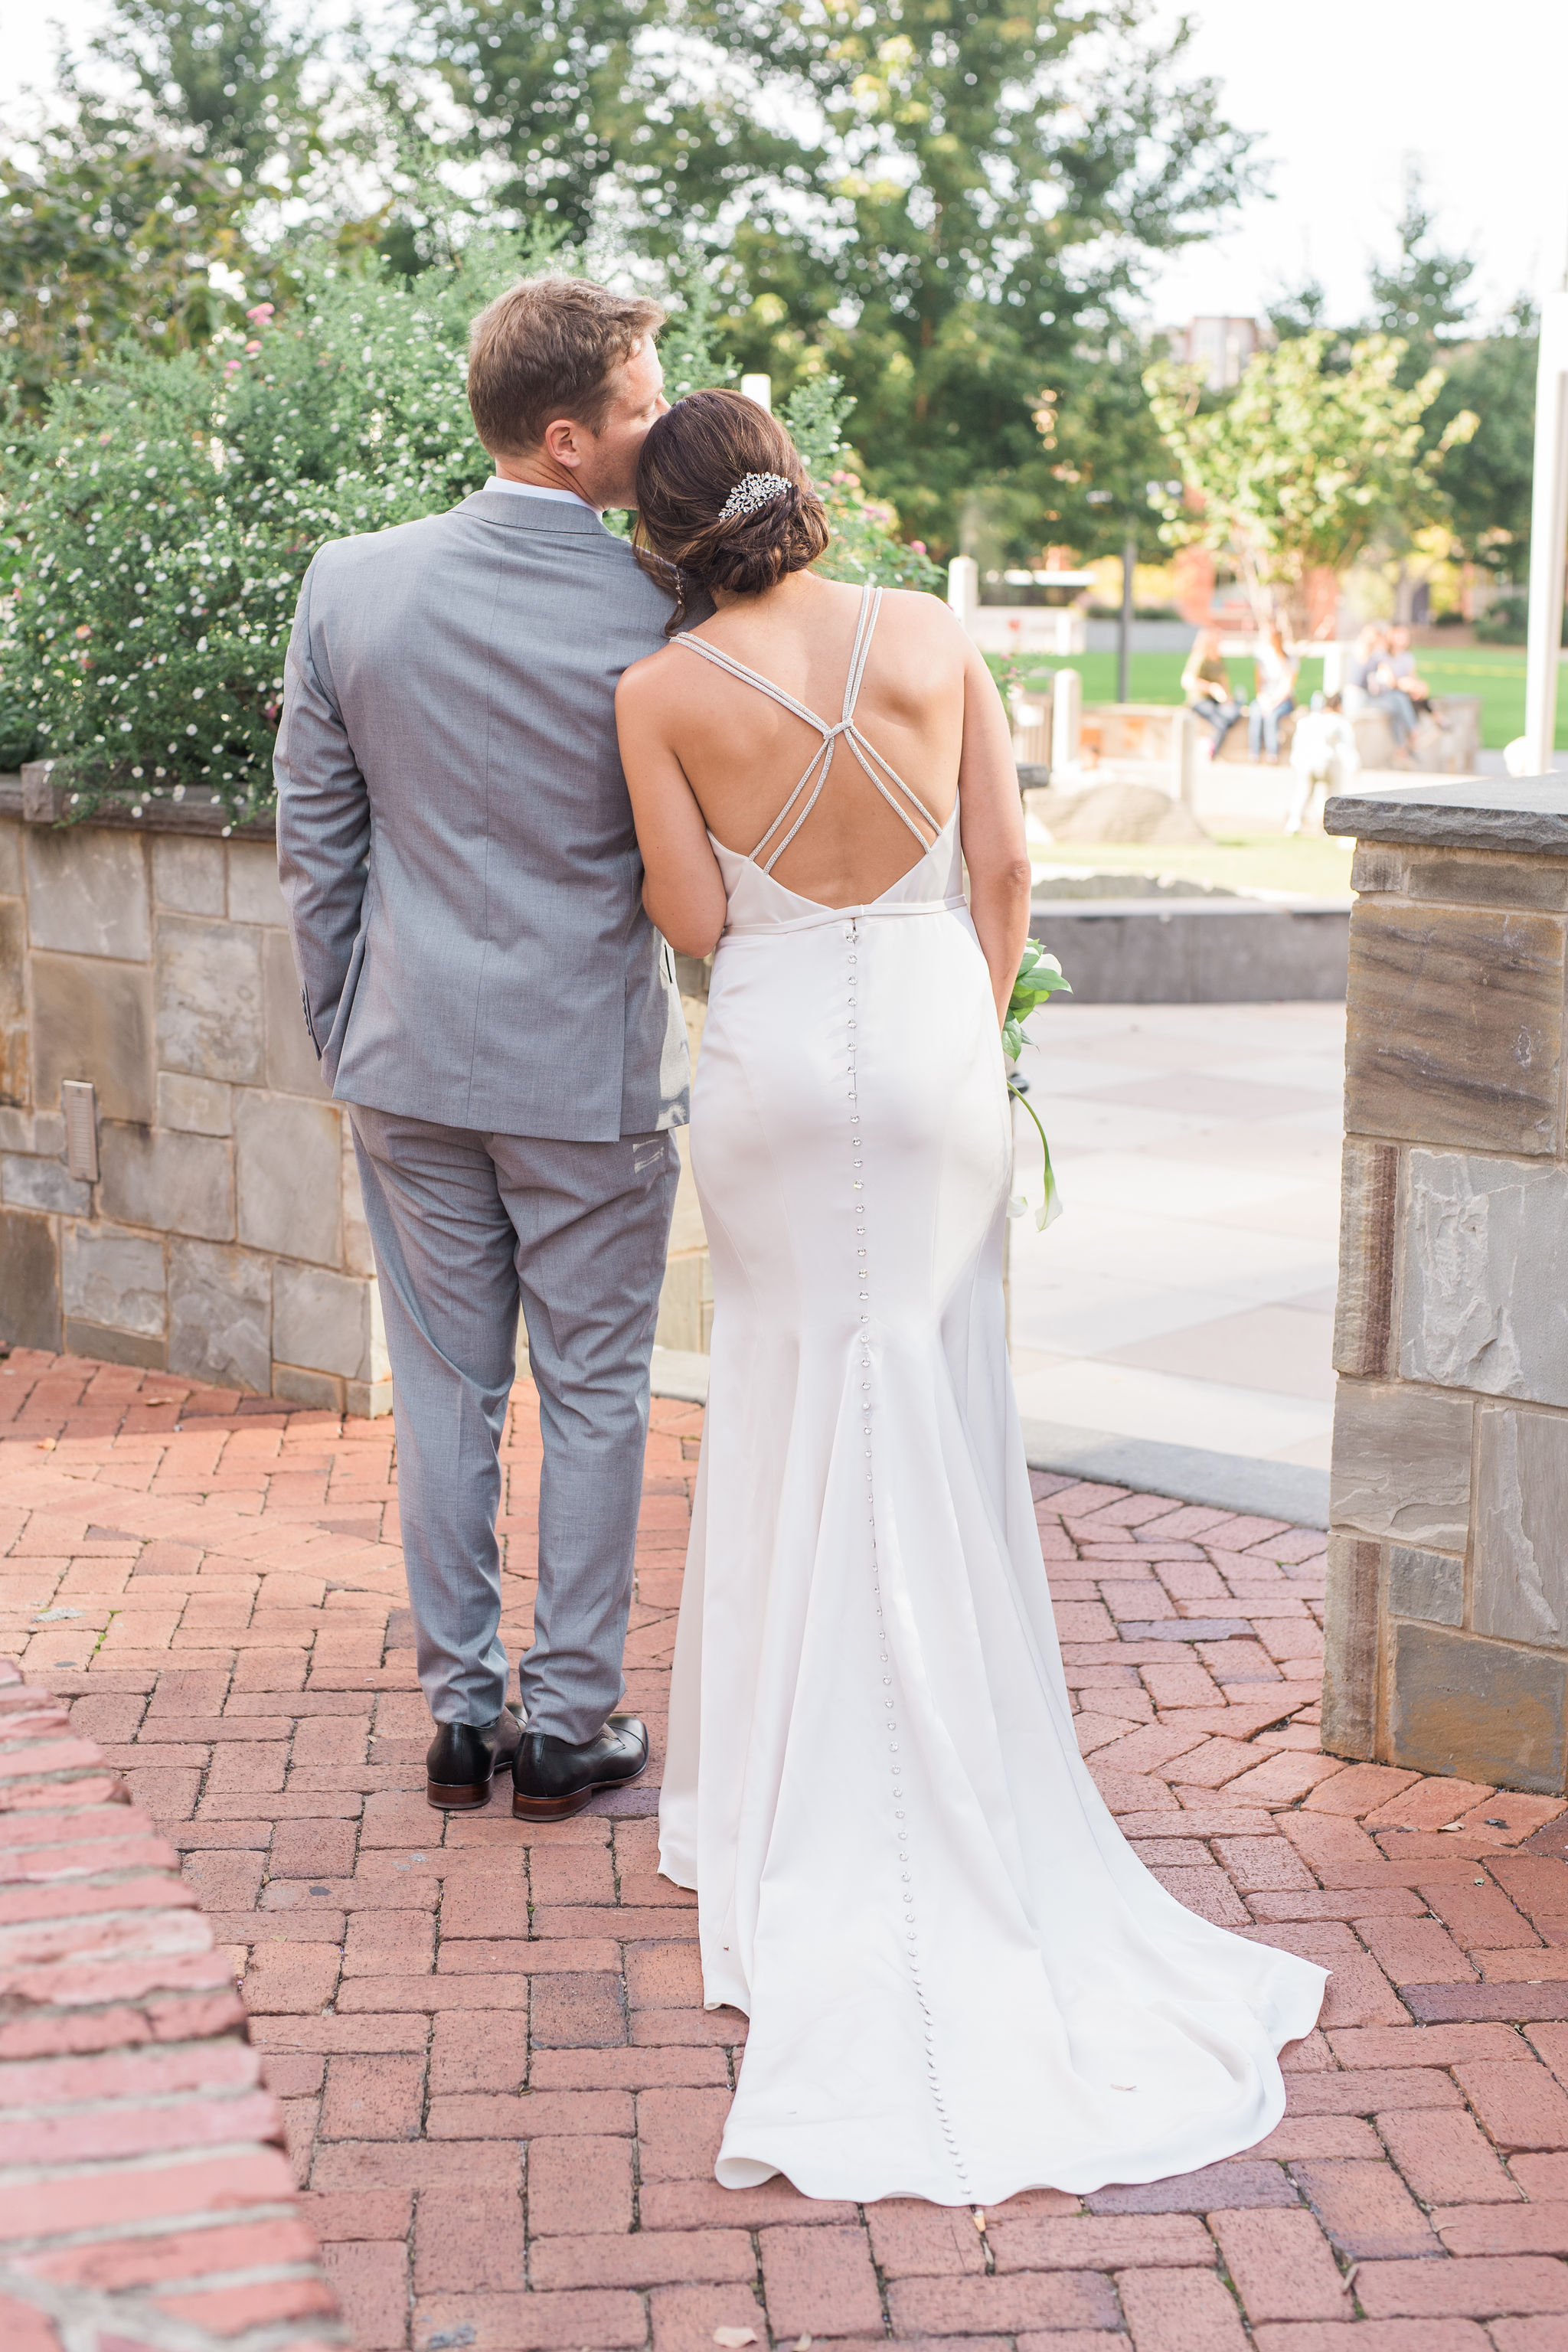 Bride wears a stunning dress by Poffie Girls with jeweled straps and walks with her groom during their fall wedding at Triple C Barrel Room